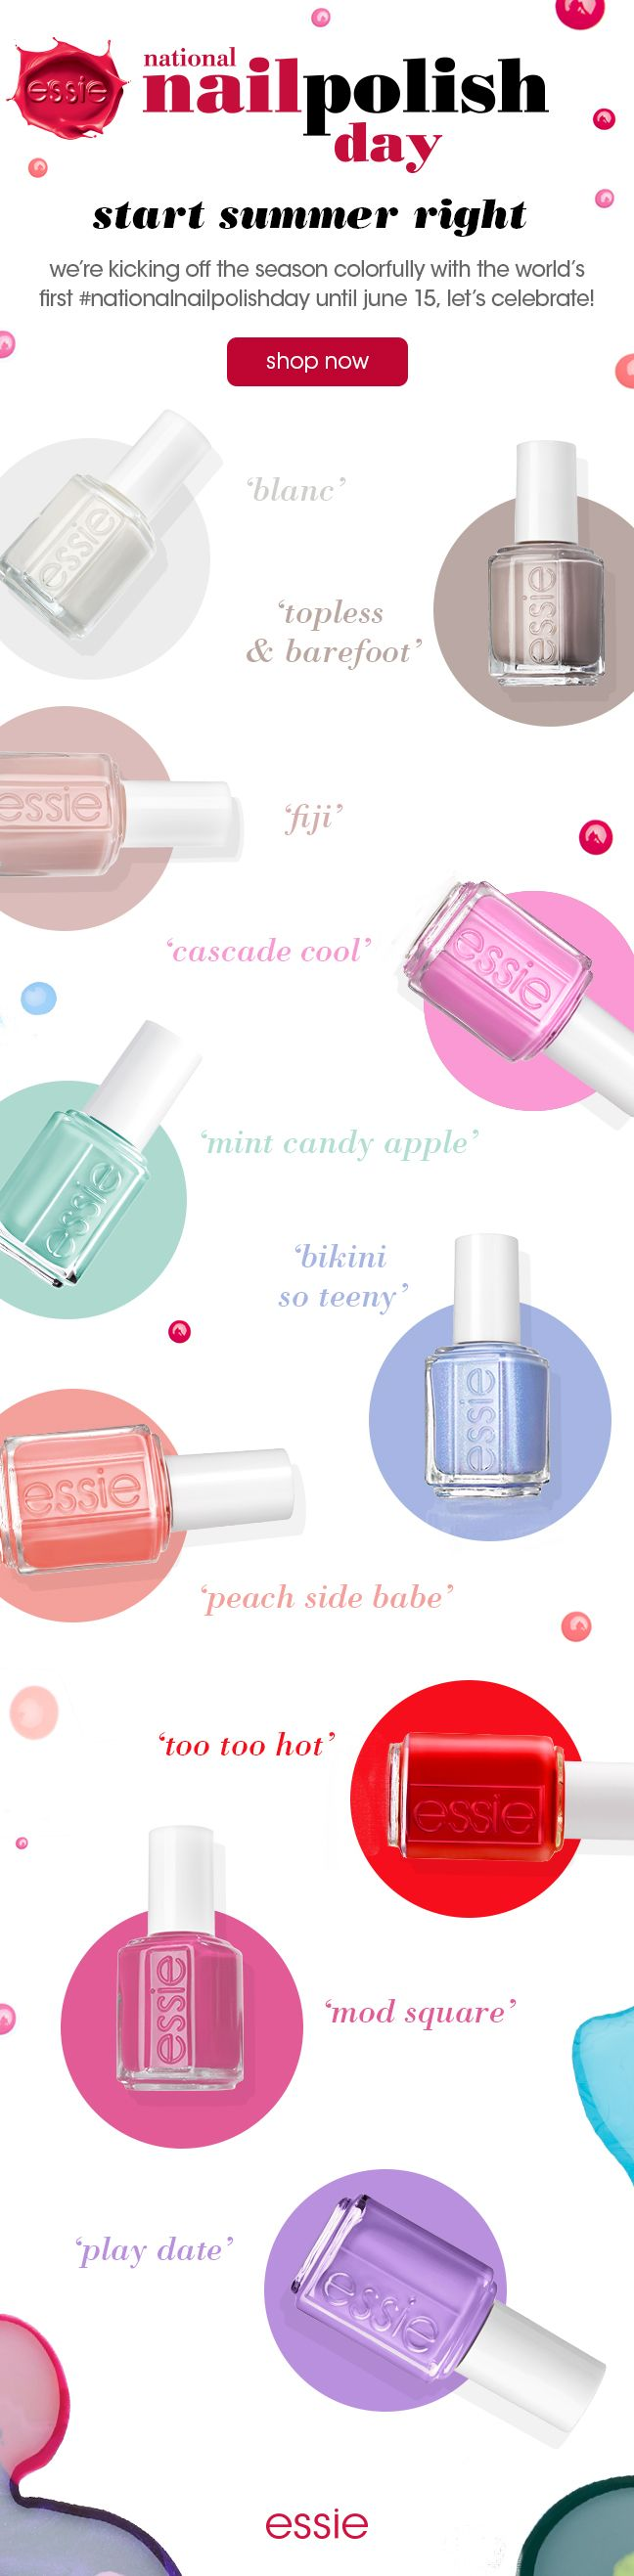 we love nail polish so much we founded a day for it! national nail polish day is june 1st but we're celebrating the fun through june 15th! shop your favorite nude, pastel or bold nail polish colors at essie.com